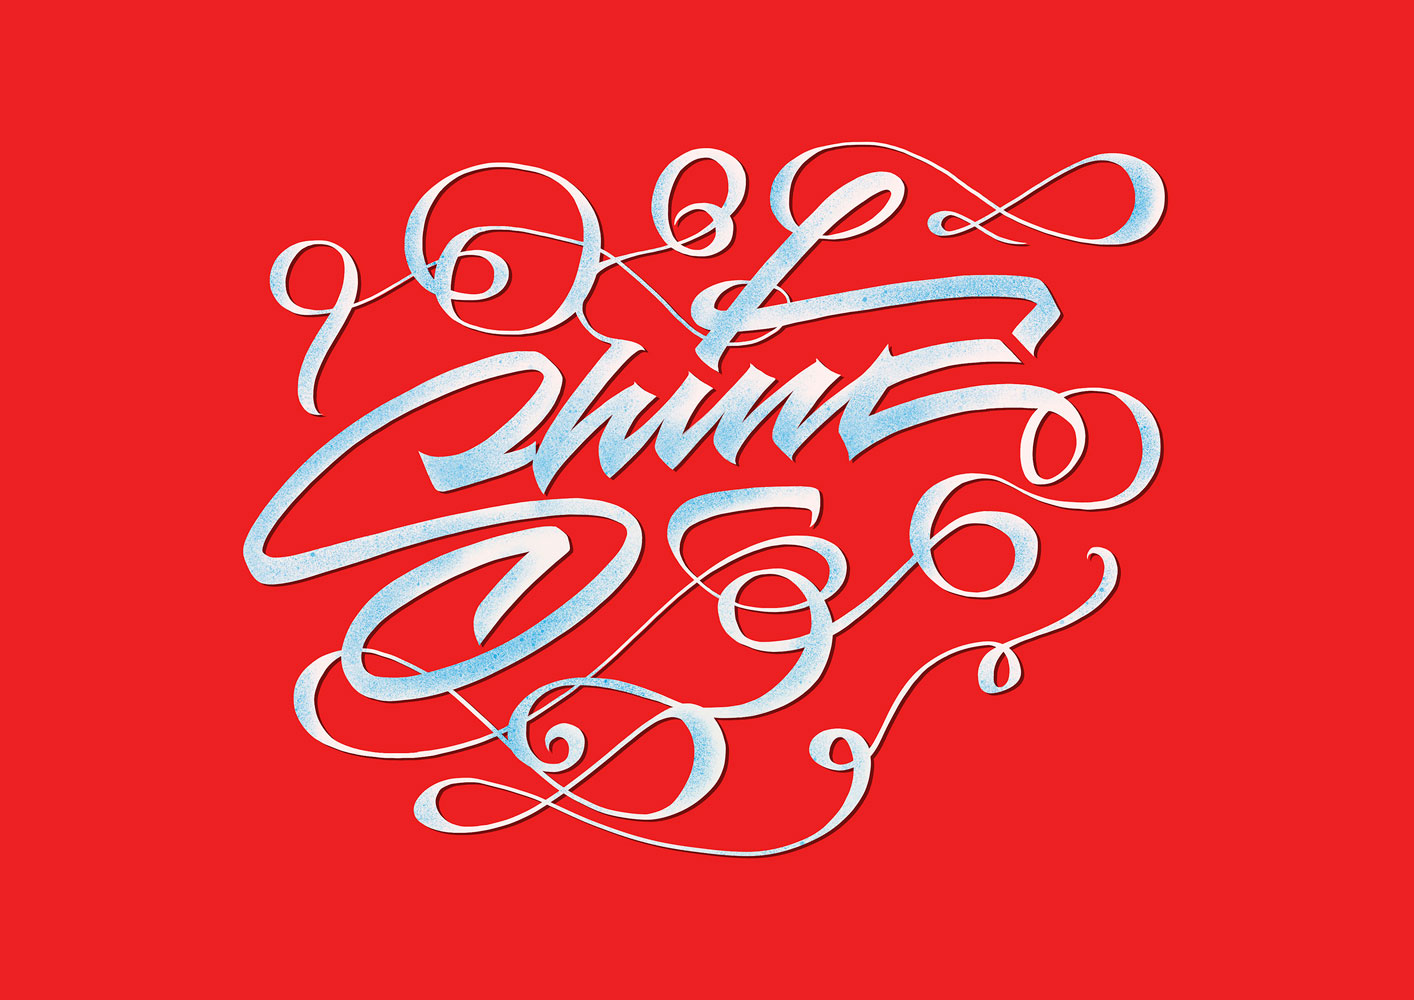 Lettering artwork with the title 'Shine'. Curved lines in white and light blue in front of a vibrant red background.